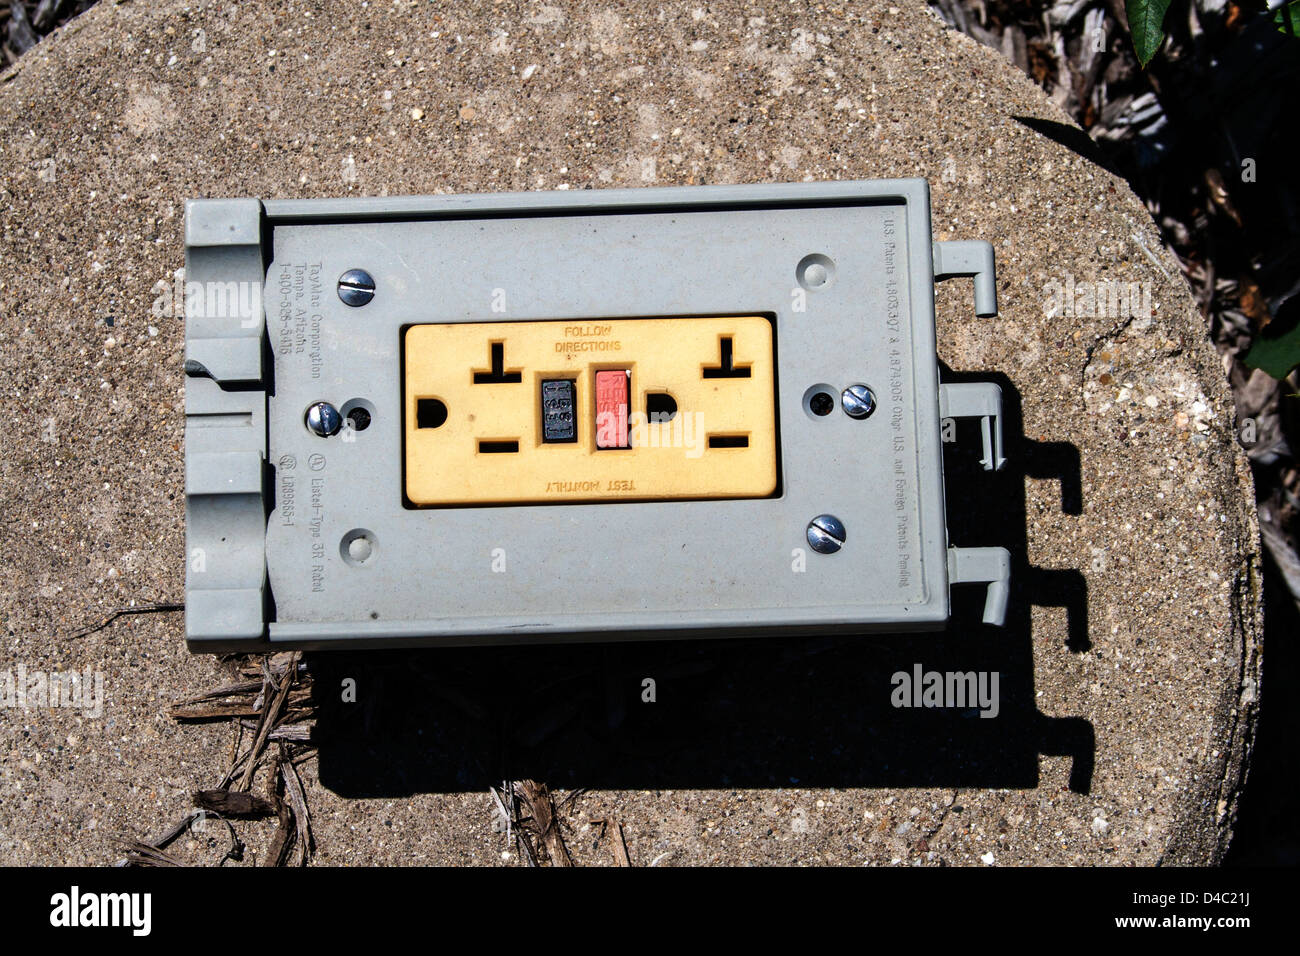 Ground fault GFCI electric receptacle sitting on a cement platform. Chicago Illinois IL USA - Stock Image